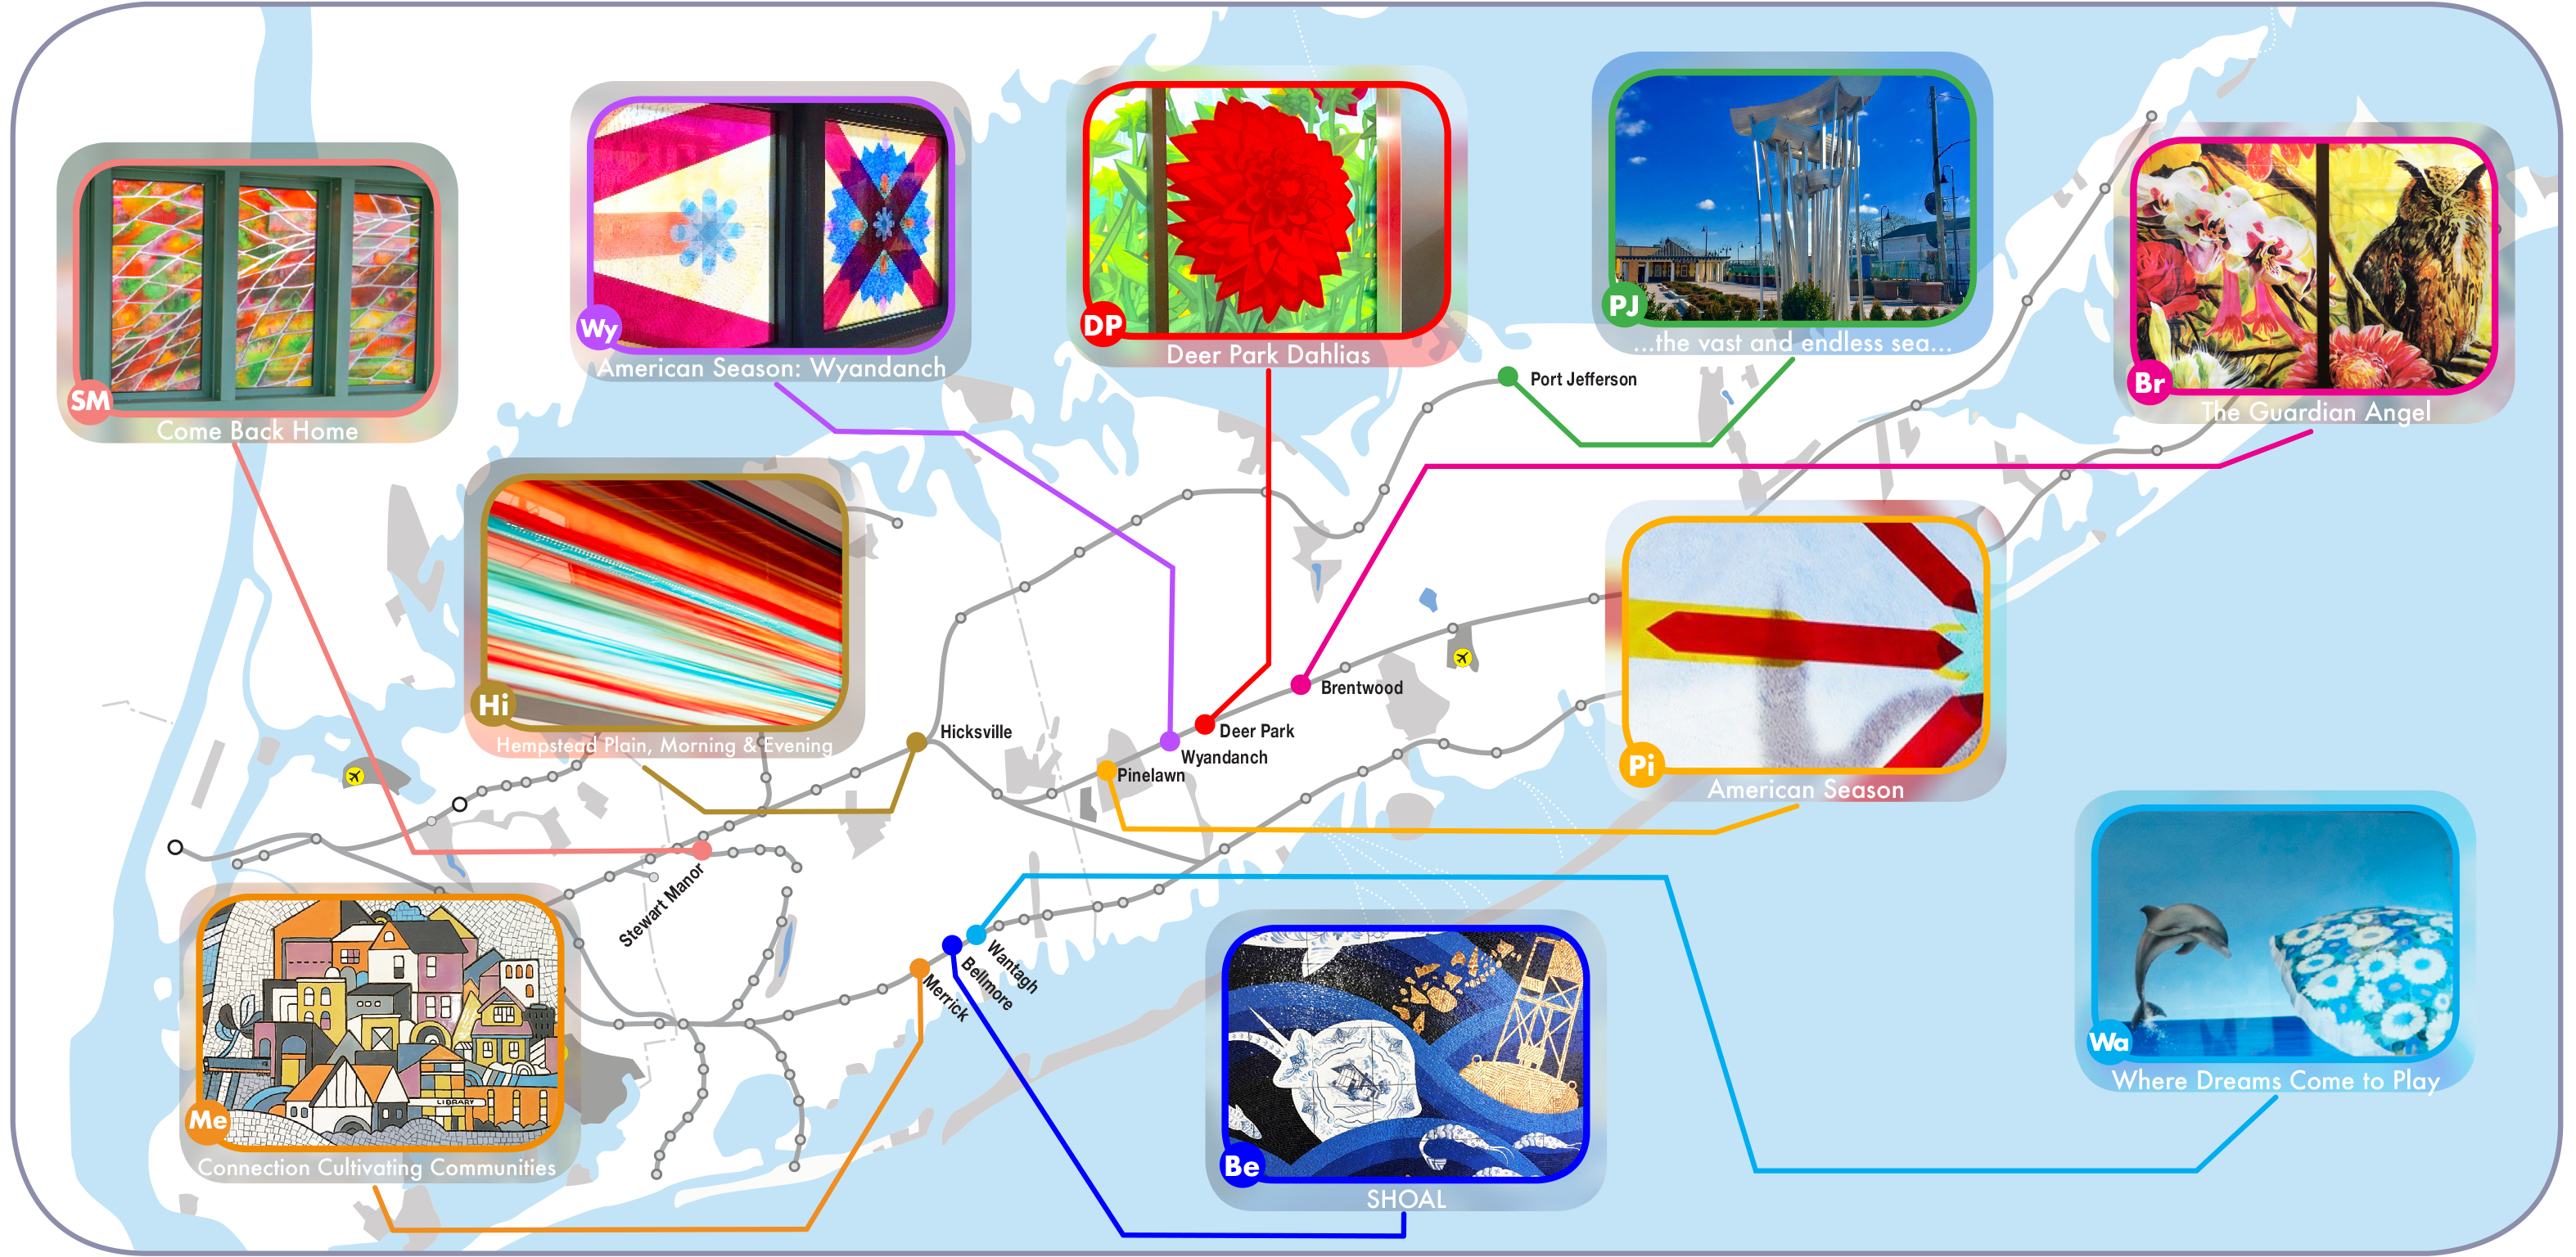 Guide to LIRR 2018 Art Installations